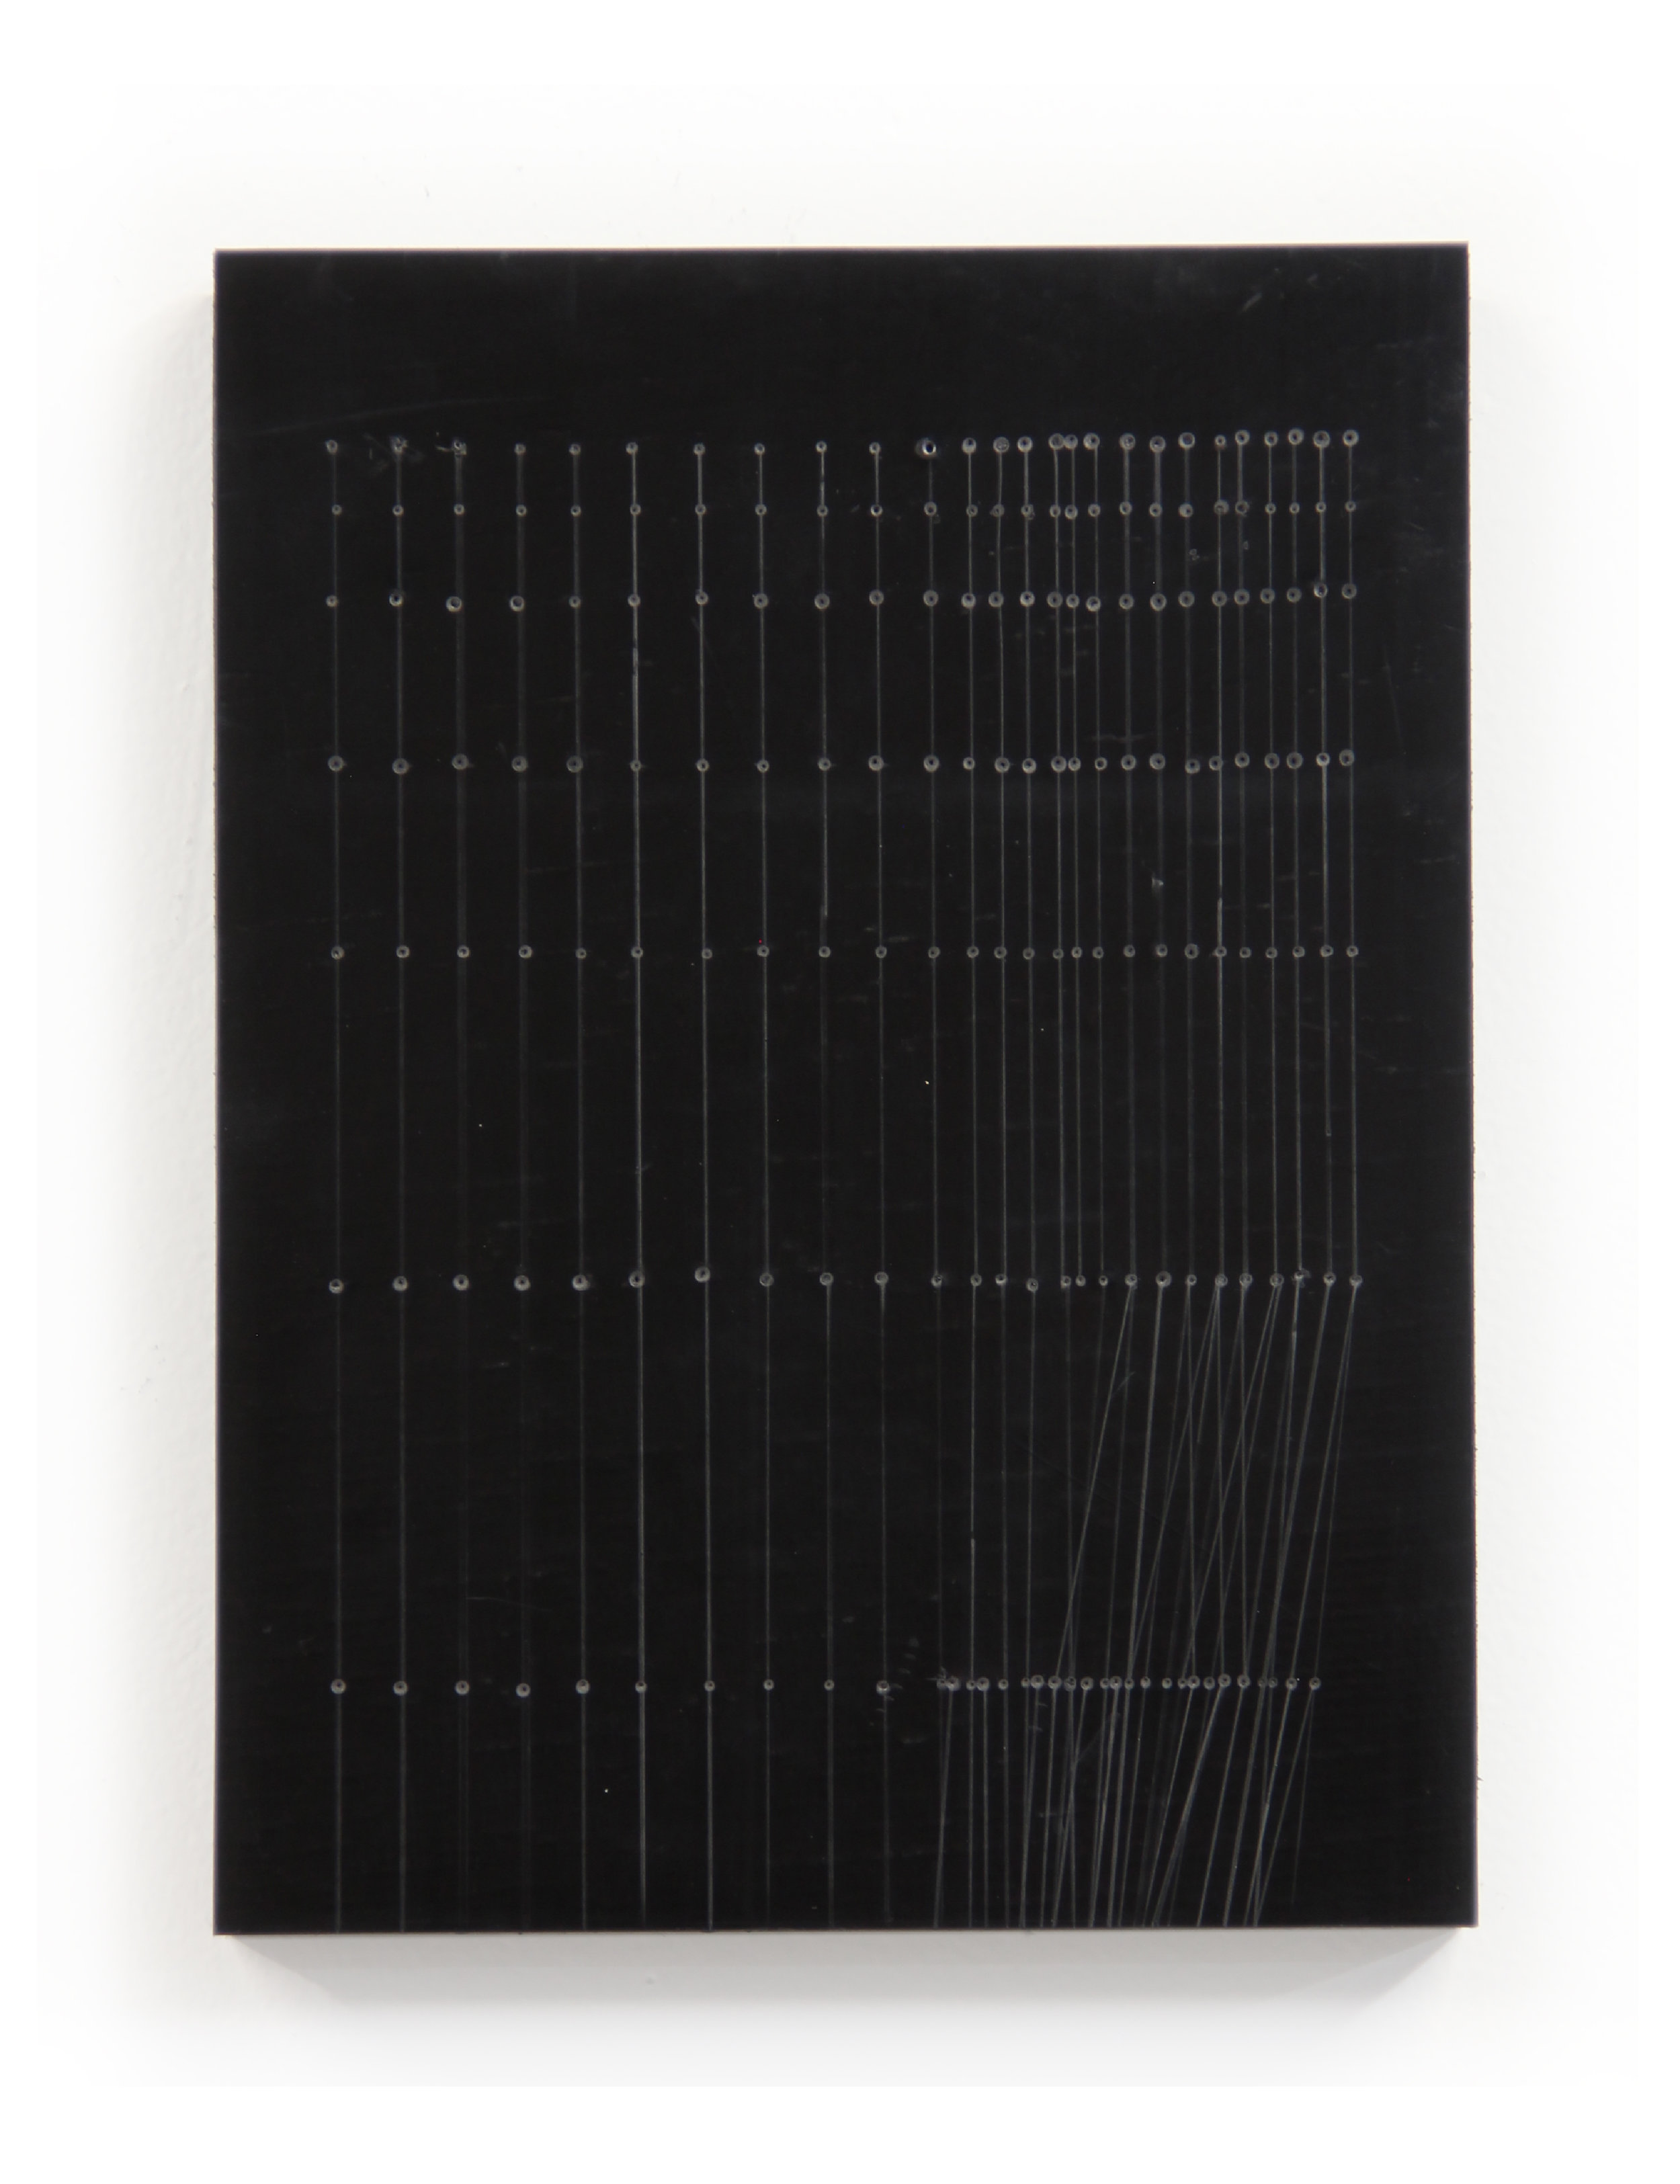 Order and Method No. 9  , Graphite and pencil on Mounted Rubber, 2017